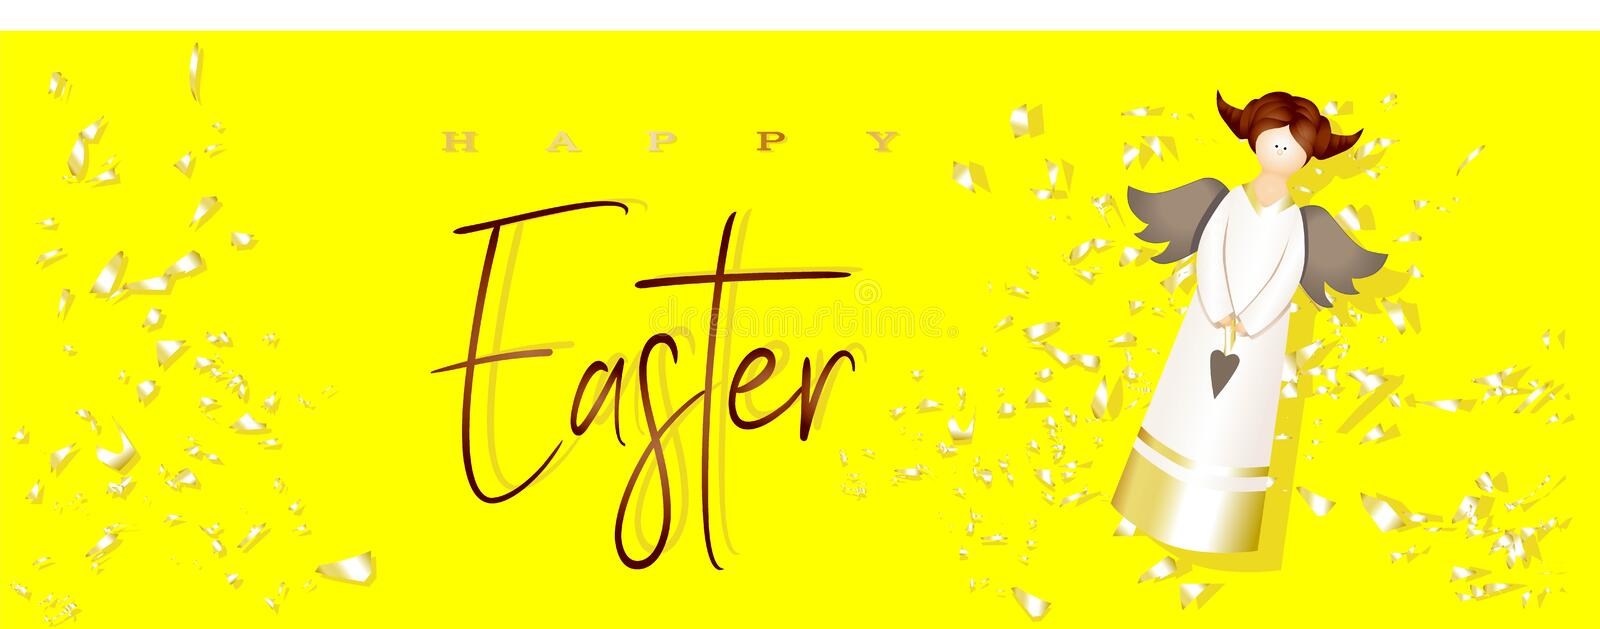 Easter poster and banner template with angel on a bright yellow background. Congratulations and gifts for Easter. Promotion and stock illustration